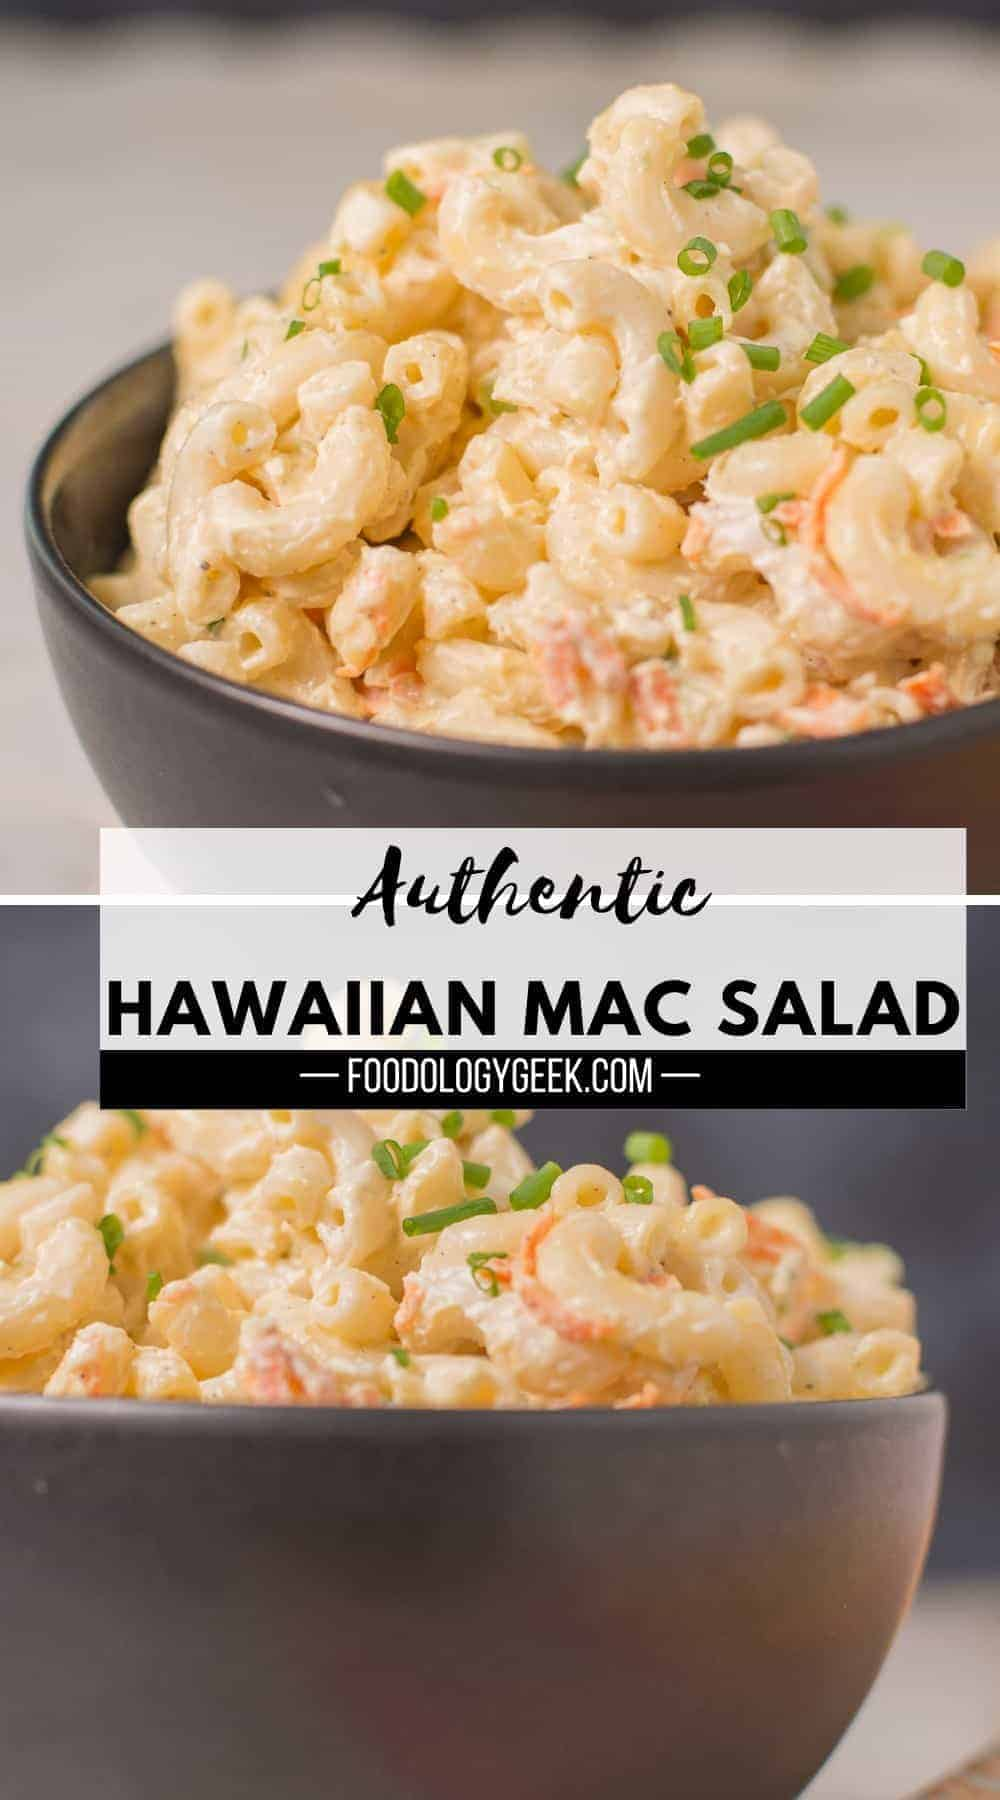 Authentic Hawaiian Macaroni Salad Recipe. Just like the kind you get with plate lunch.